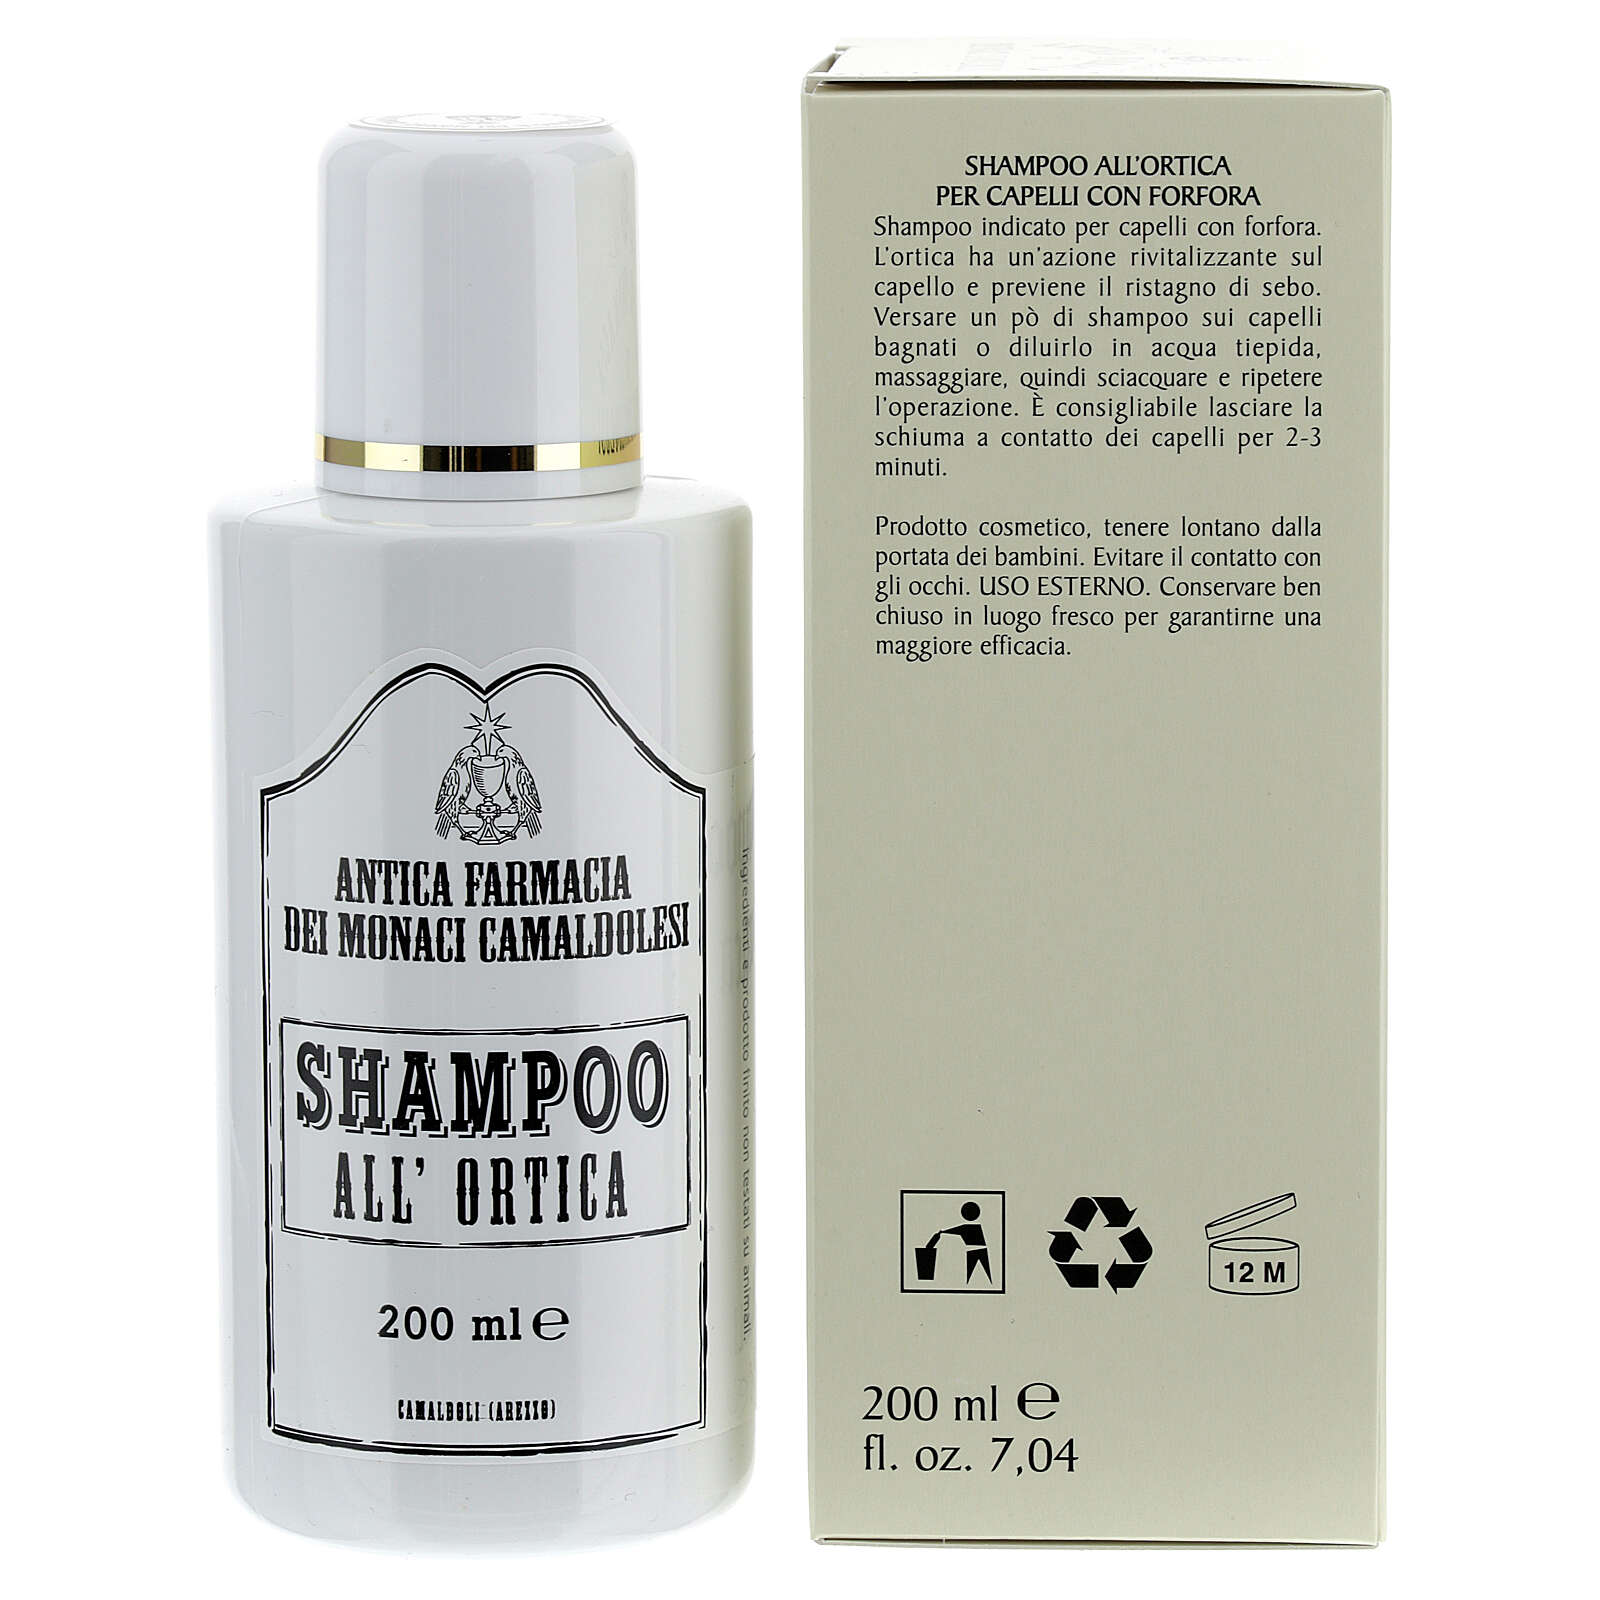 Shampoo all'ortica 200 ml 4